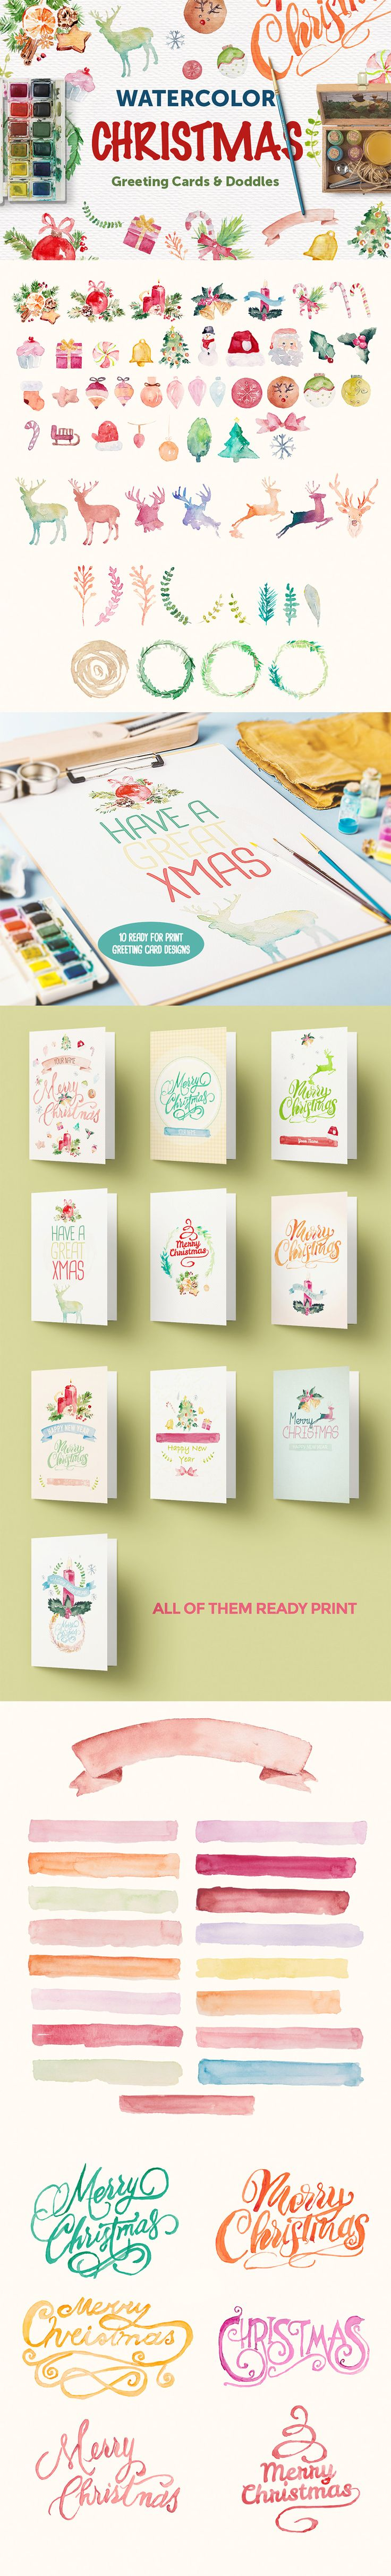 {FREE} The Massive, End of Year Freebie Bundle #christmas #watercolor